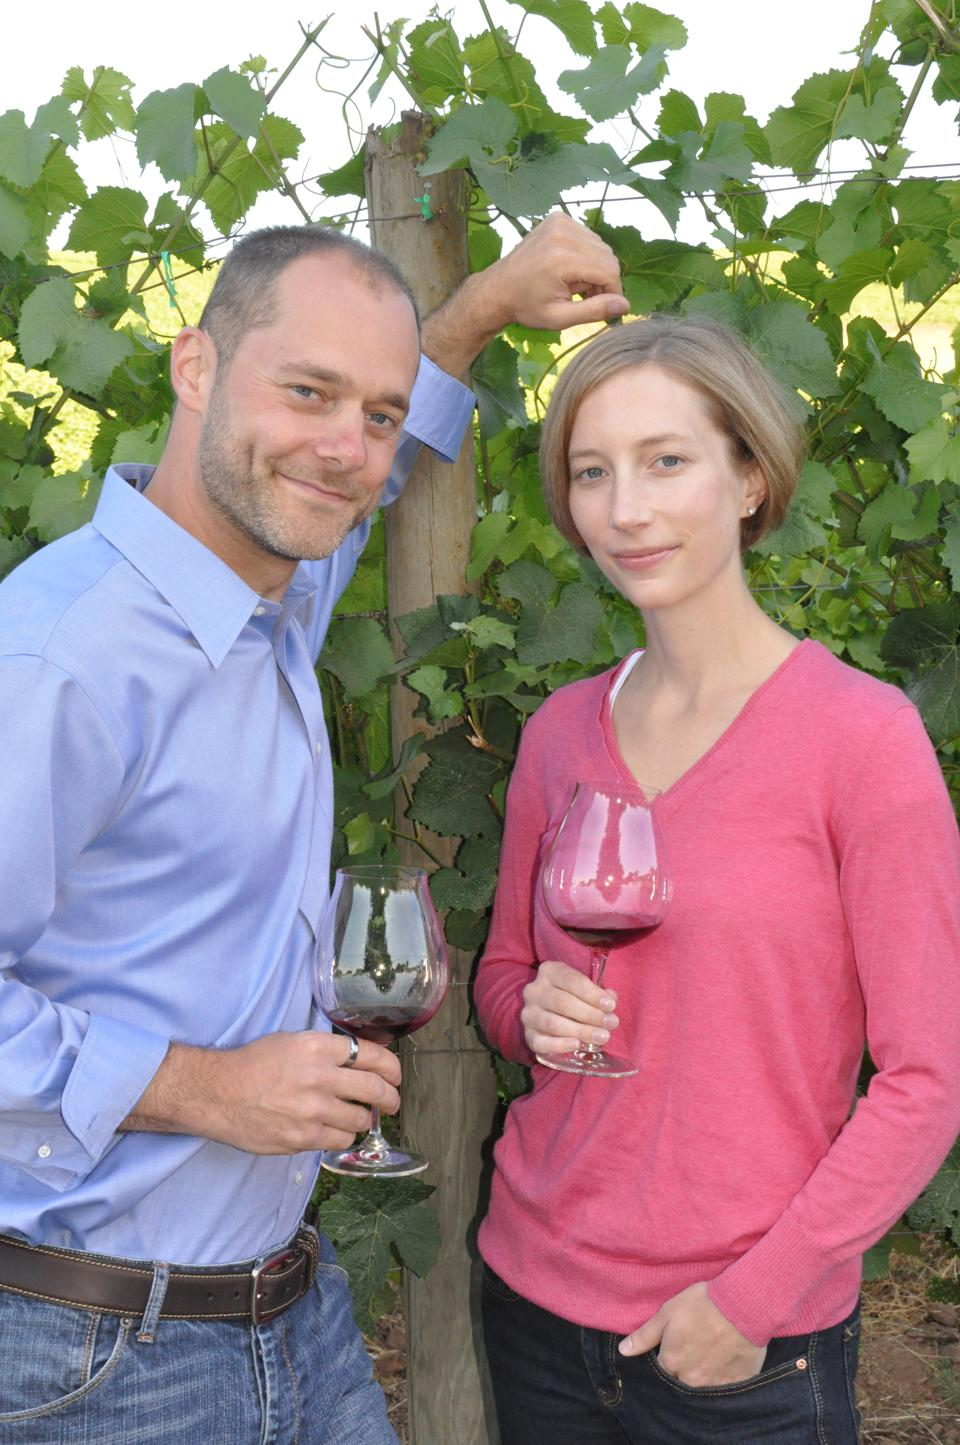 Alex and Alison Sokol Blosser are co-presidents of the family winery in Willamette Valley